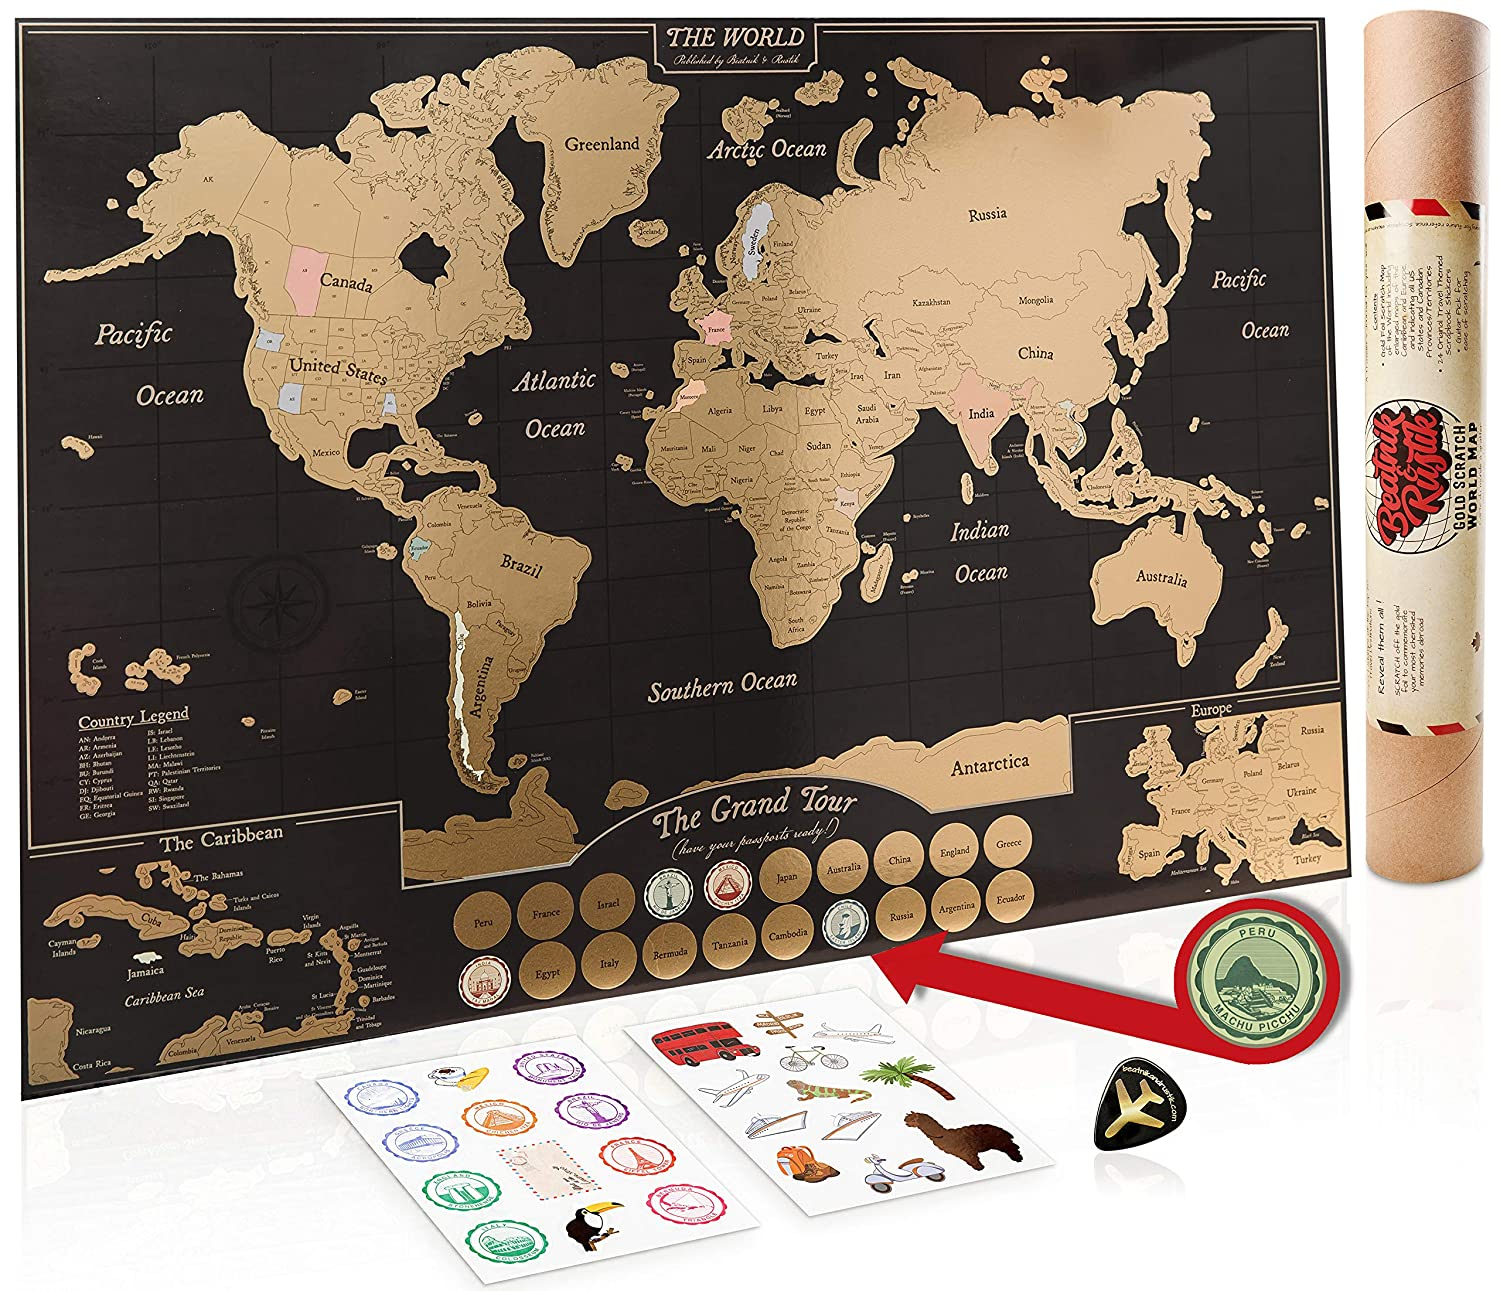 Gold Scratch Off World Map Poster - with US States & Canadian Provinces. A Travel Journal for your Wall! 24 Scrapbook Stickers & Bucket List. Fun Gifts for Graduation or Teachers. World Traveller Decor by Beatnik & Rustic Beatnik & Rustik